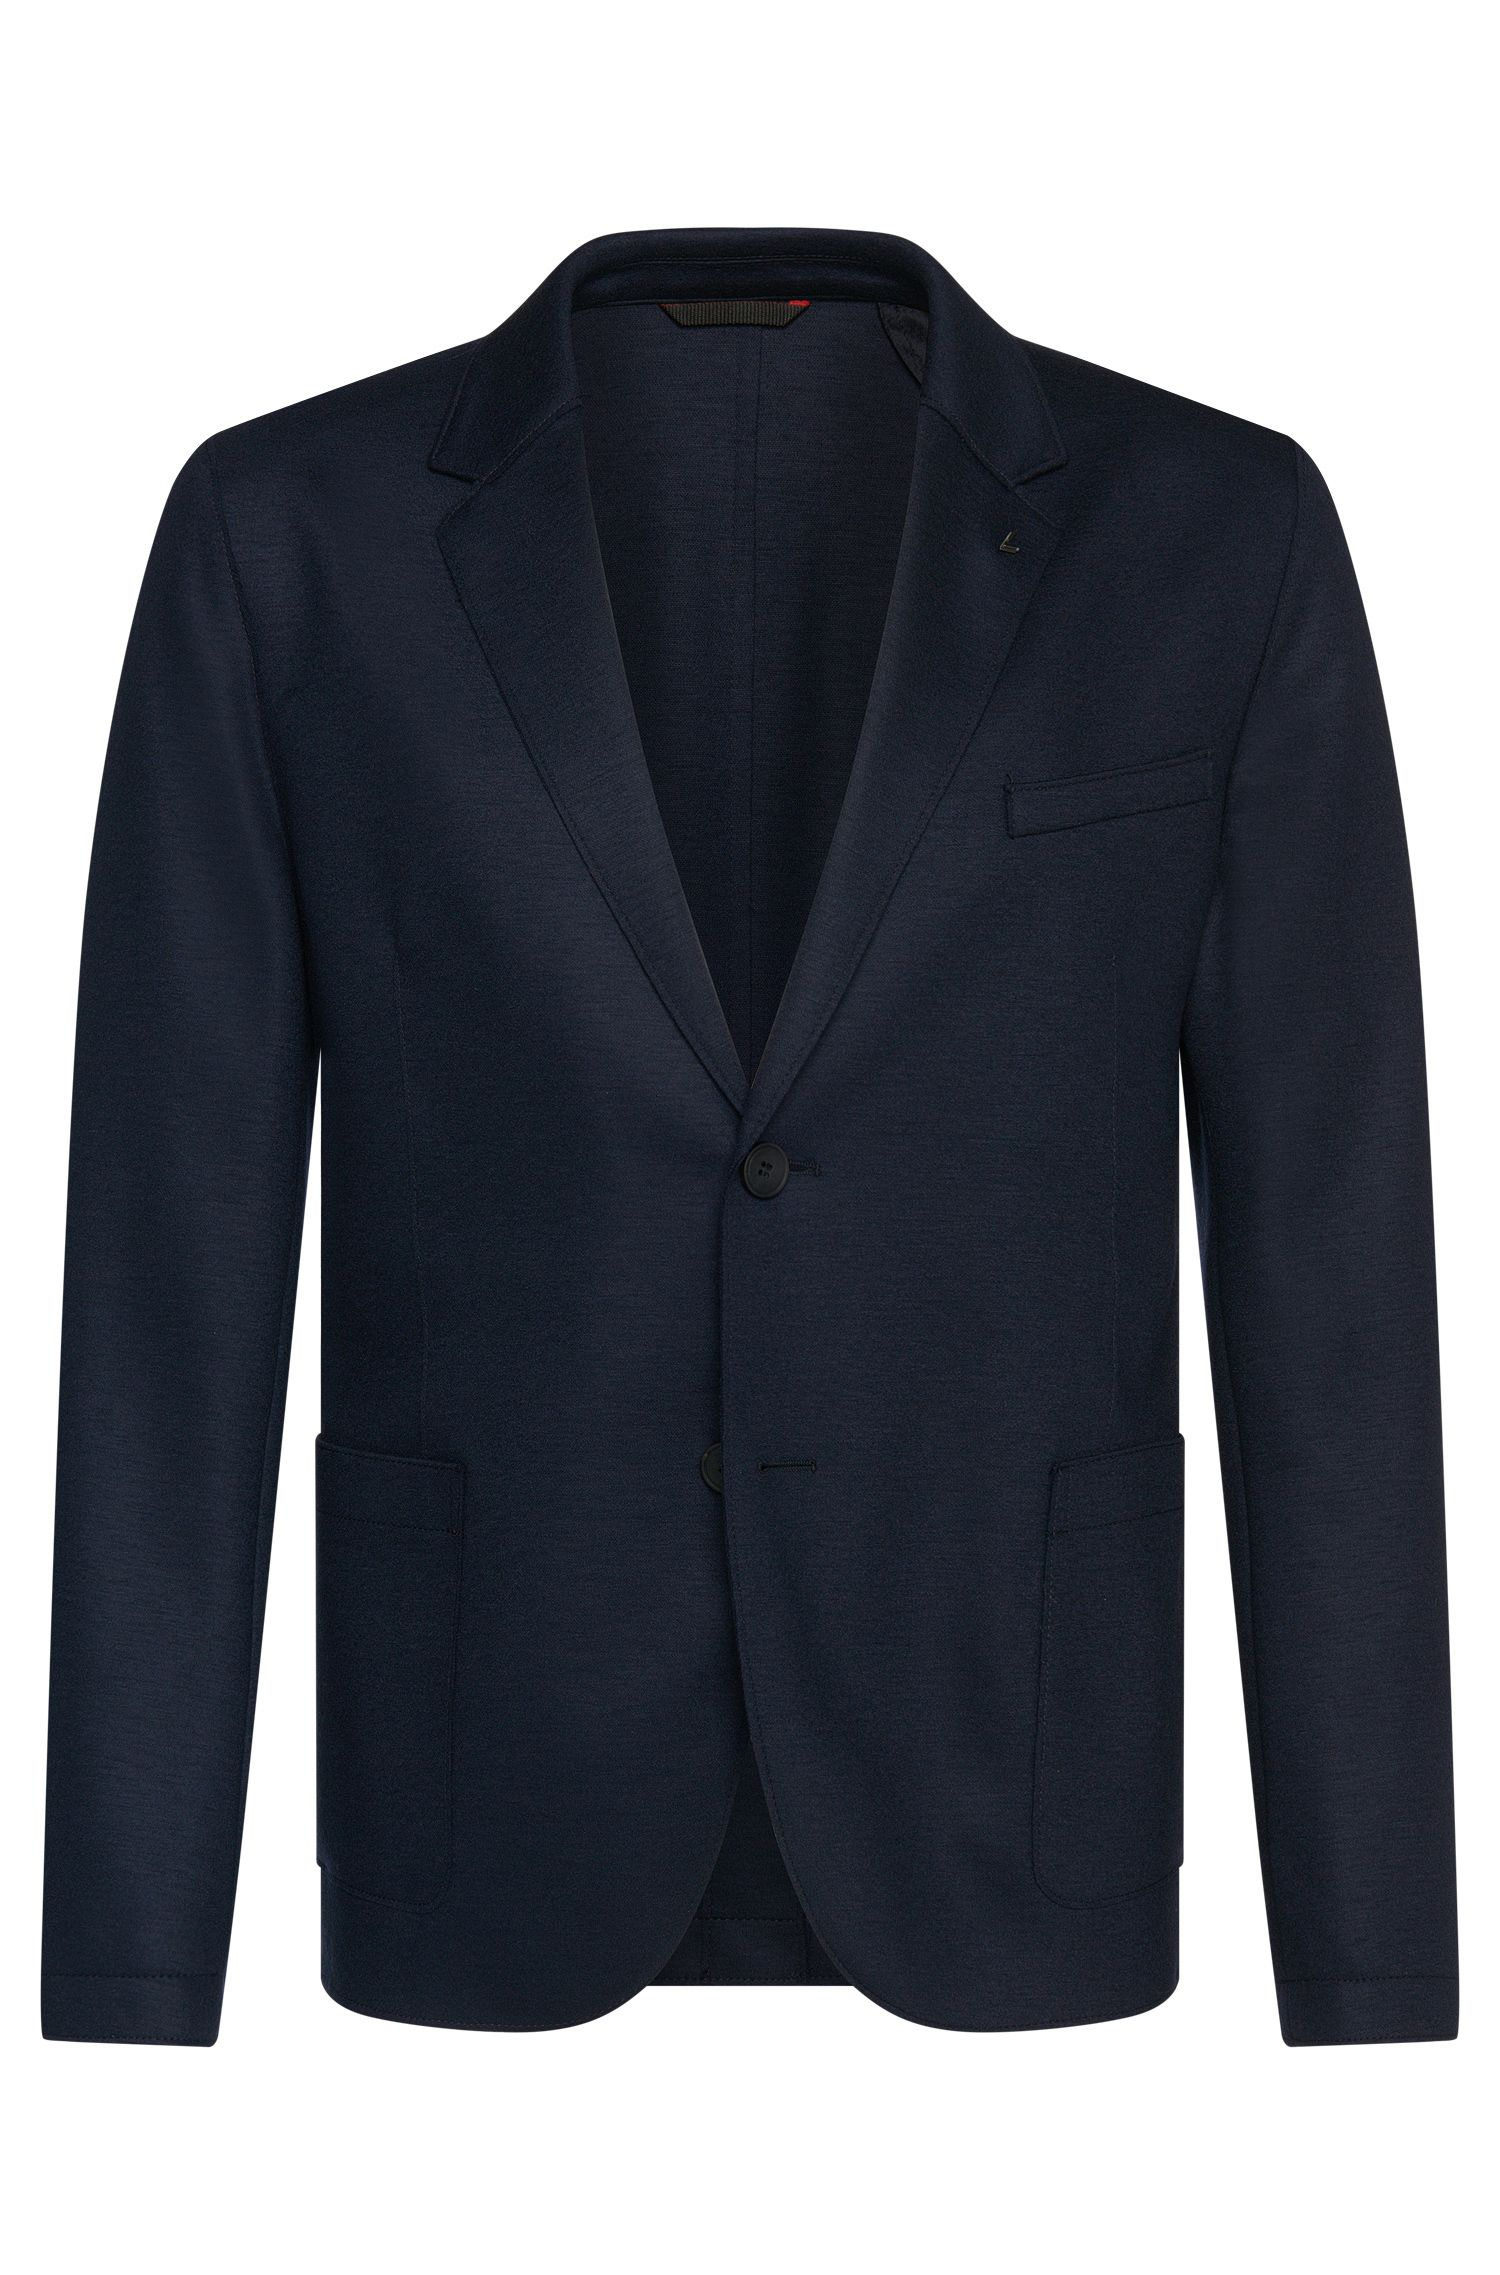 Veste de costume Slim Fit en laine vierge extensible mélangée, à bords francs : « Alento »